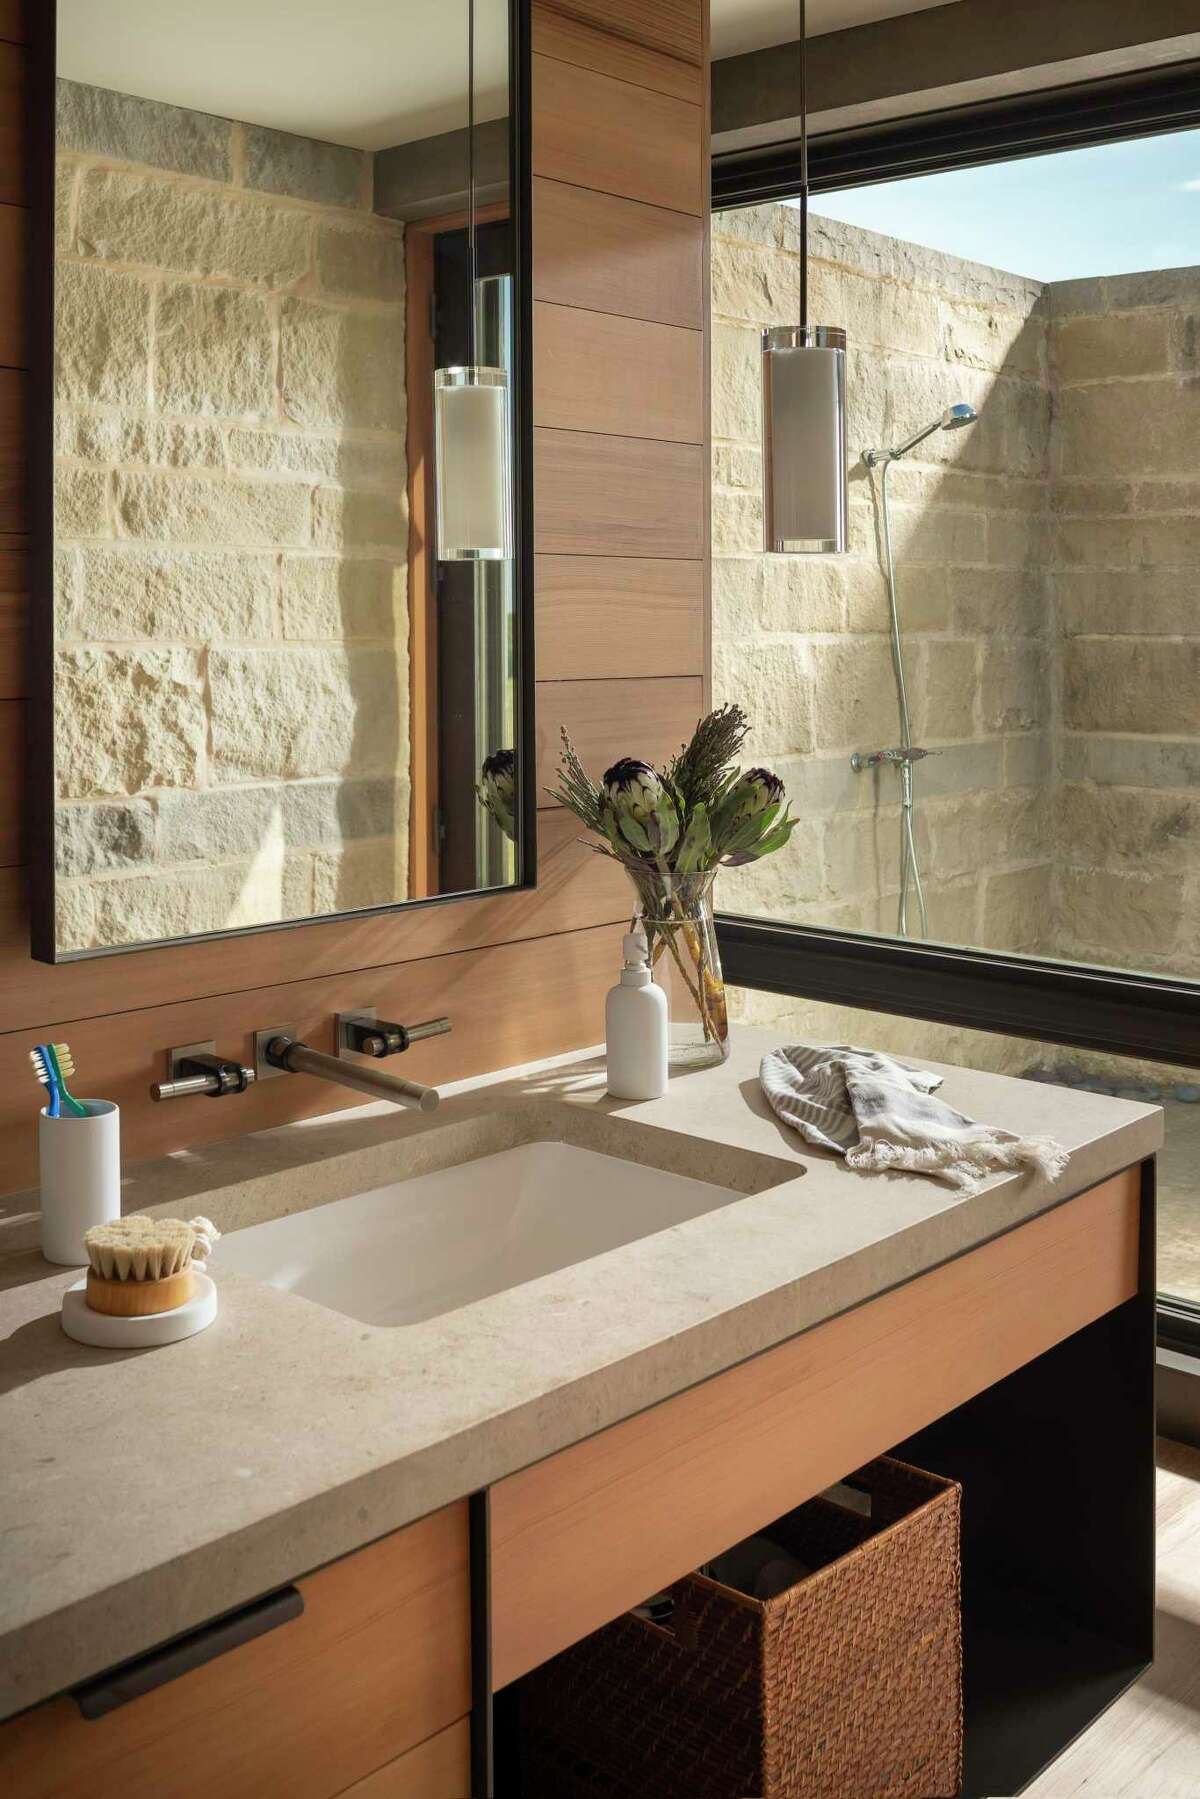 A limestone outdoor shower sits just outside the master bathroom.